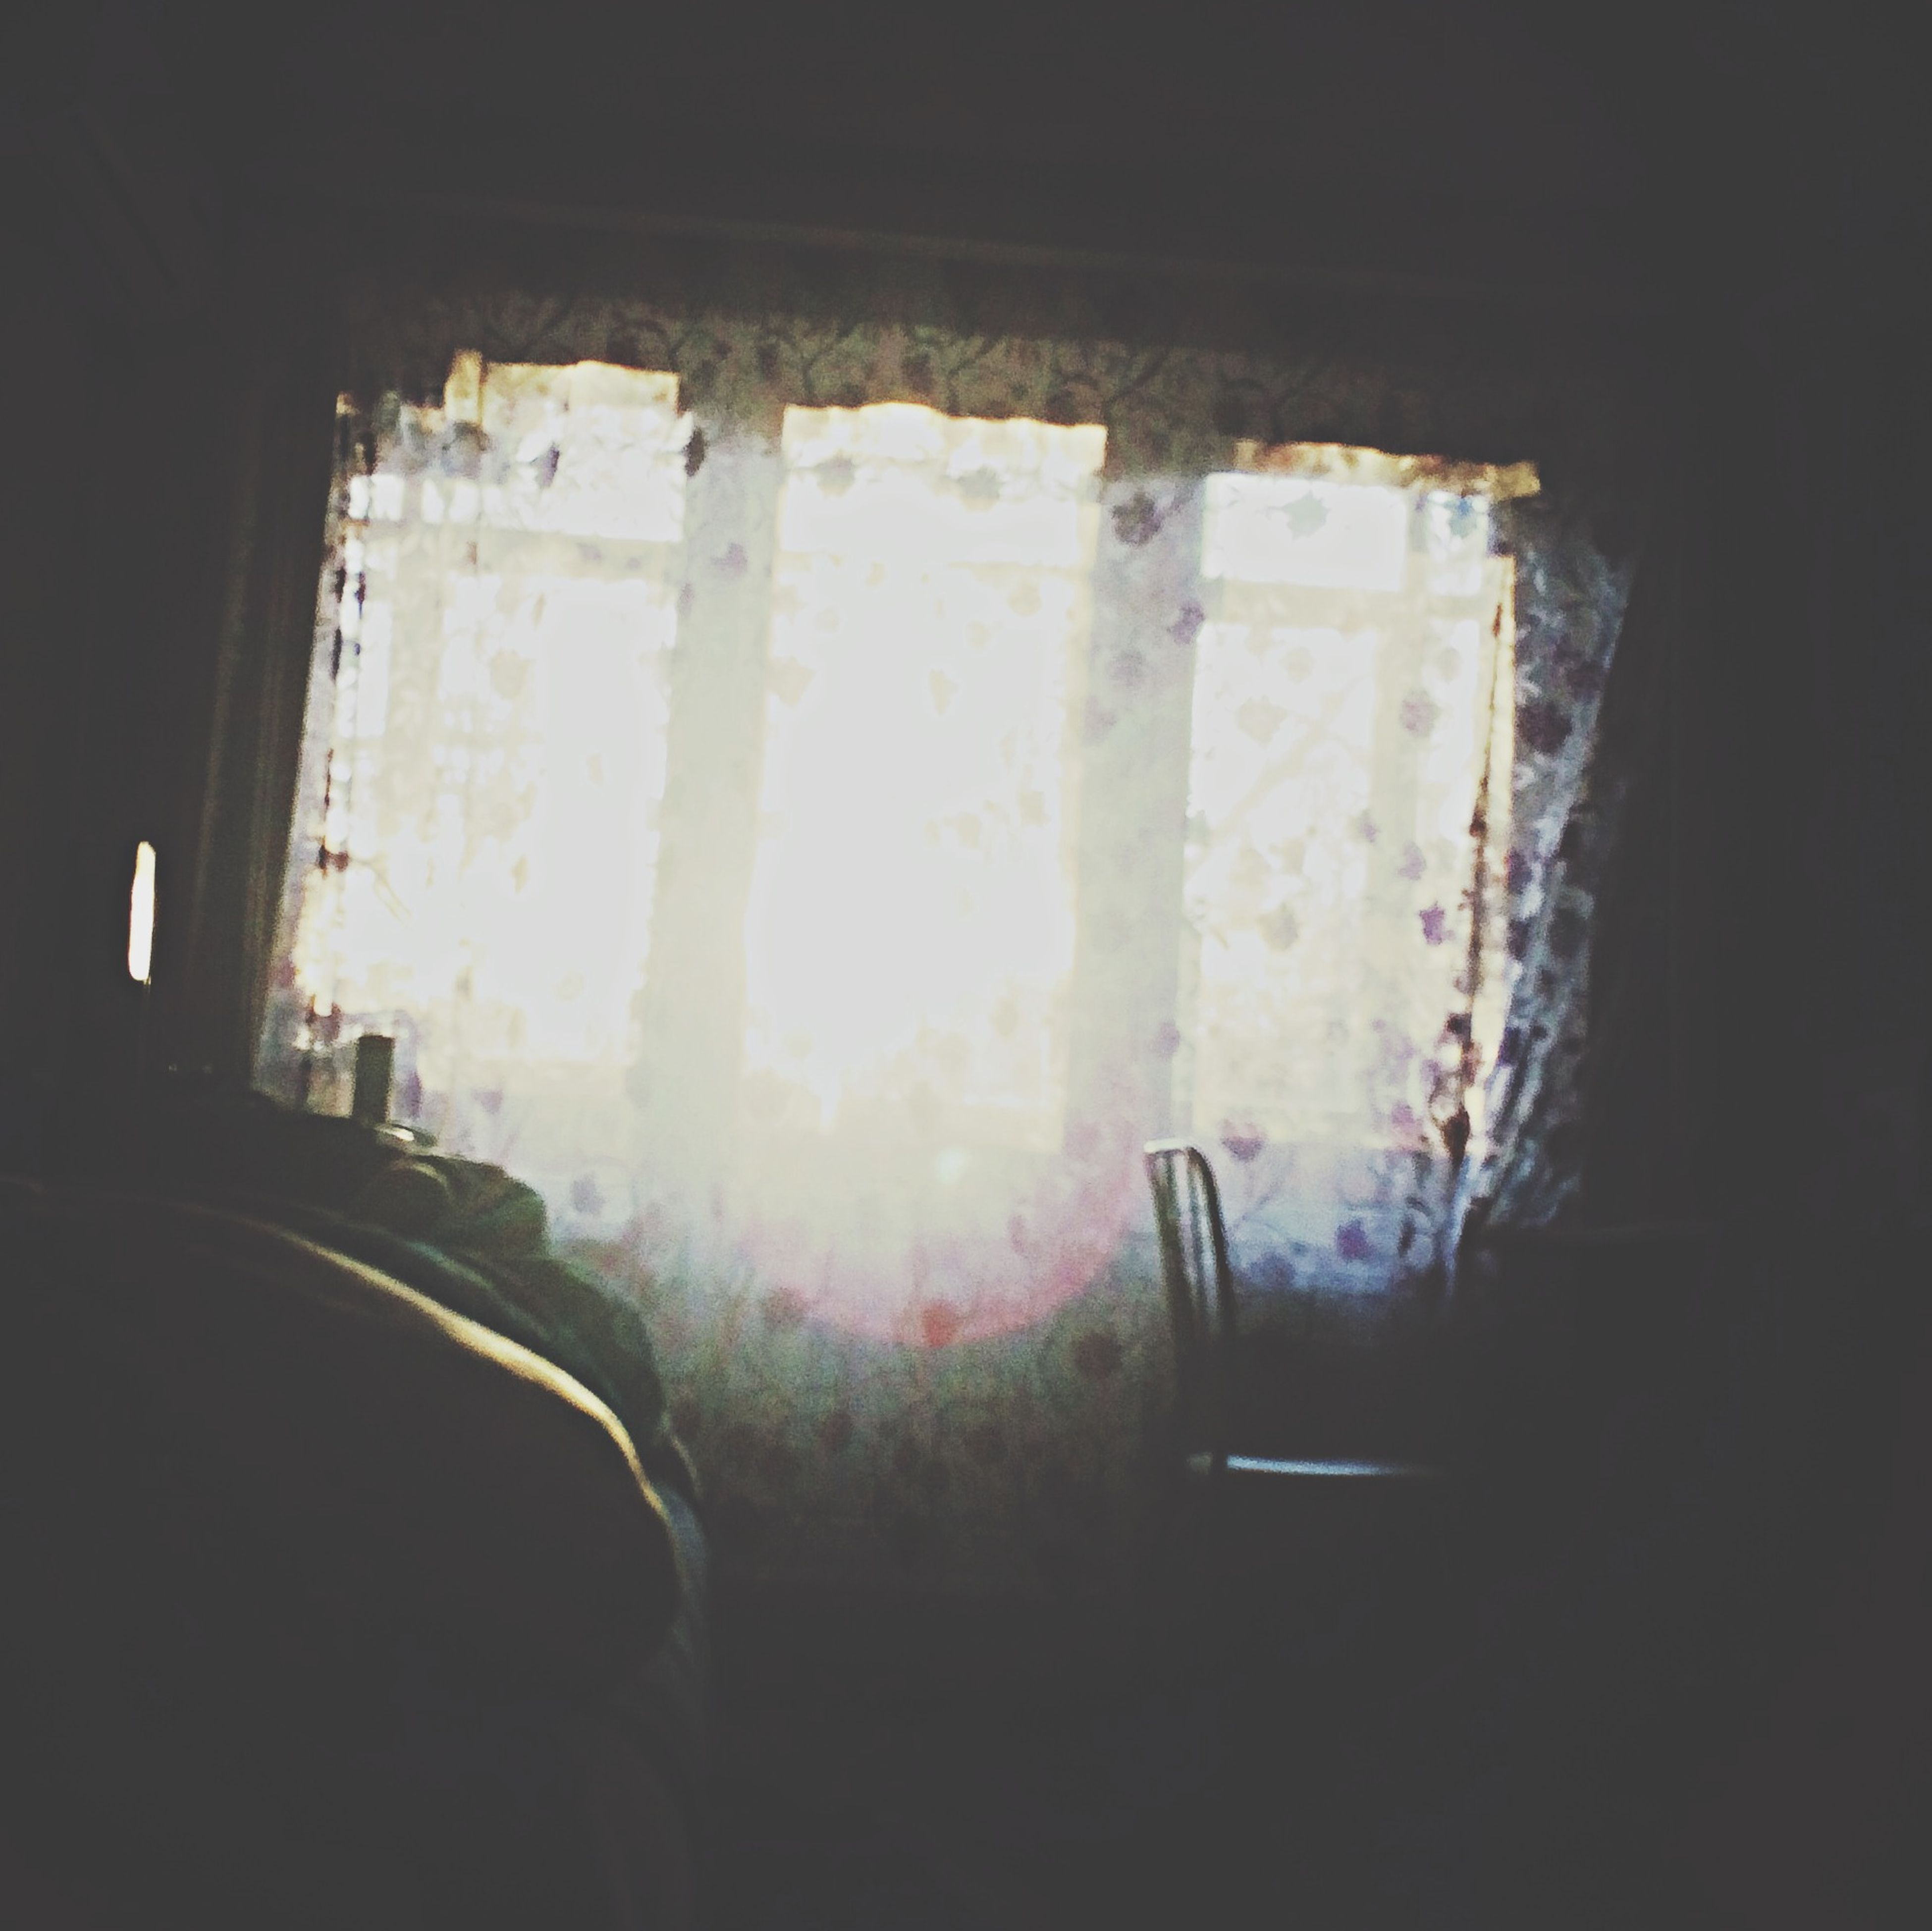 indoors, window, glass - material, transparent, built structure, architecture, home interior, house, dark, interior, sunlight, empty, curtain, absence, day, no people, wall - building feature, abandoned, glass, wall